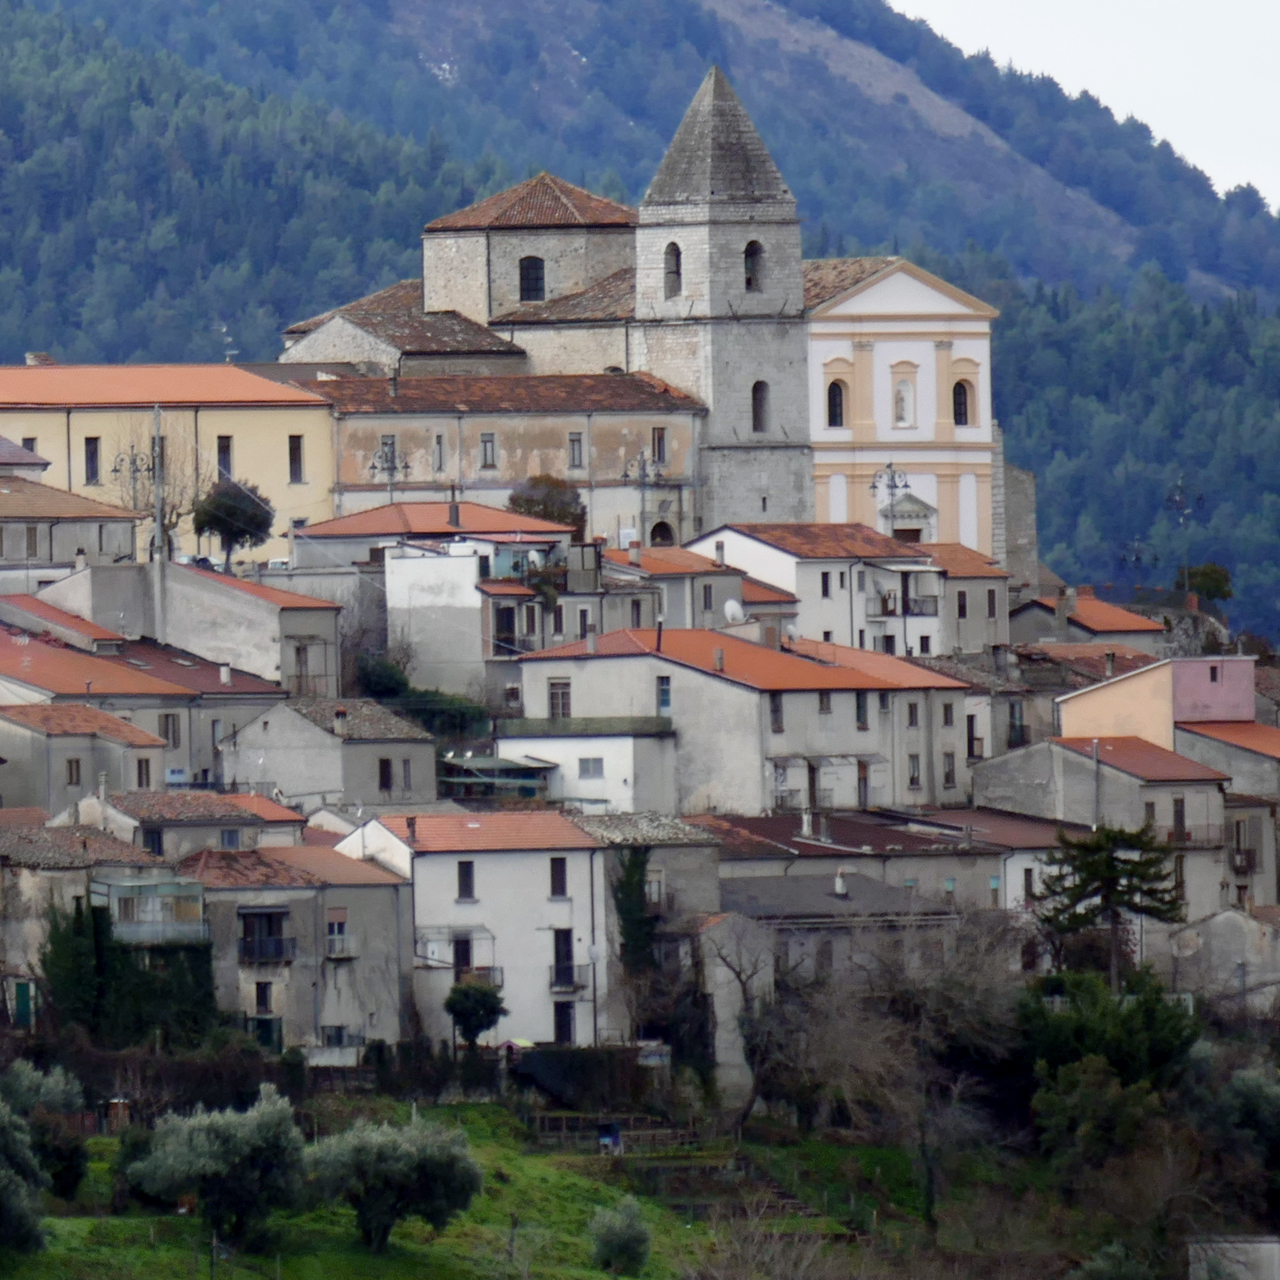 https://www.cuorebasilicata.it/wp-content/uploads/2019/01/marsico_home.jpg